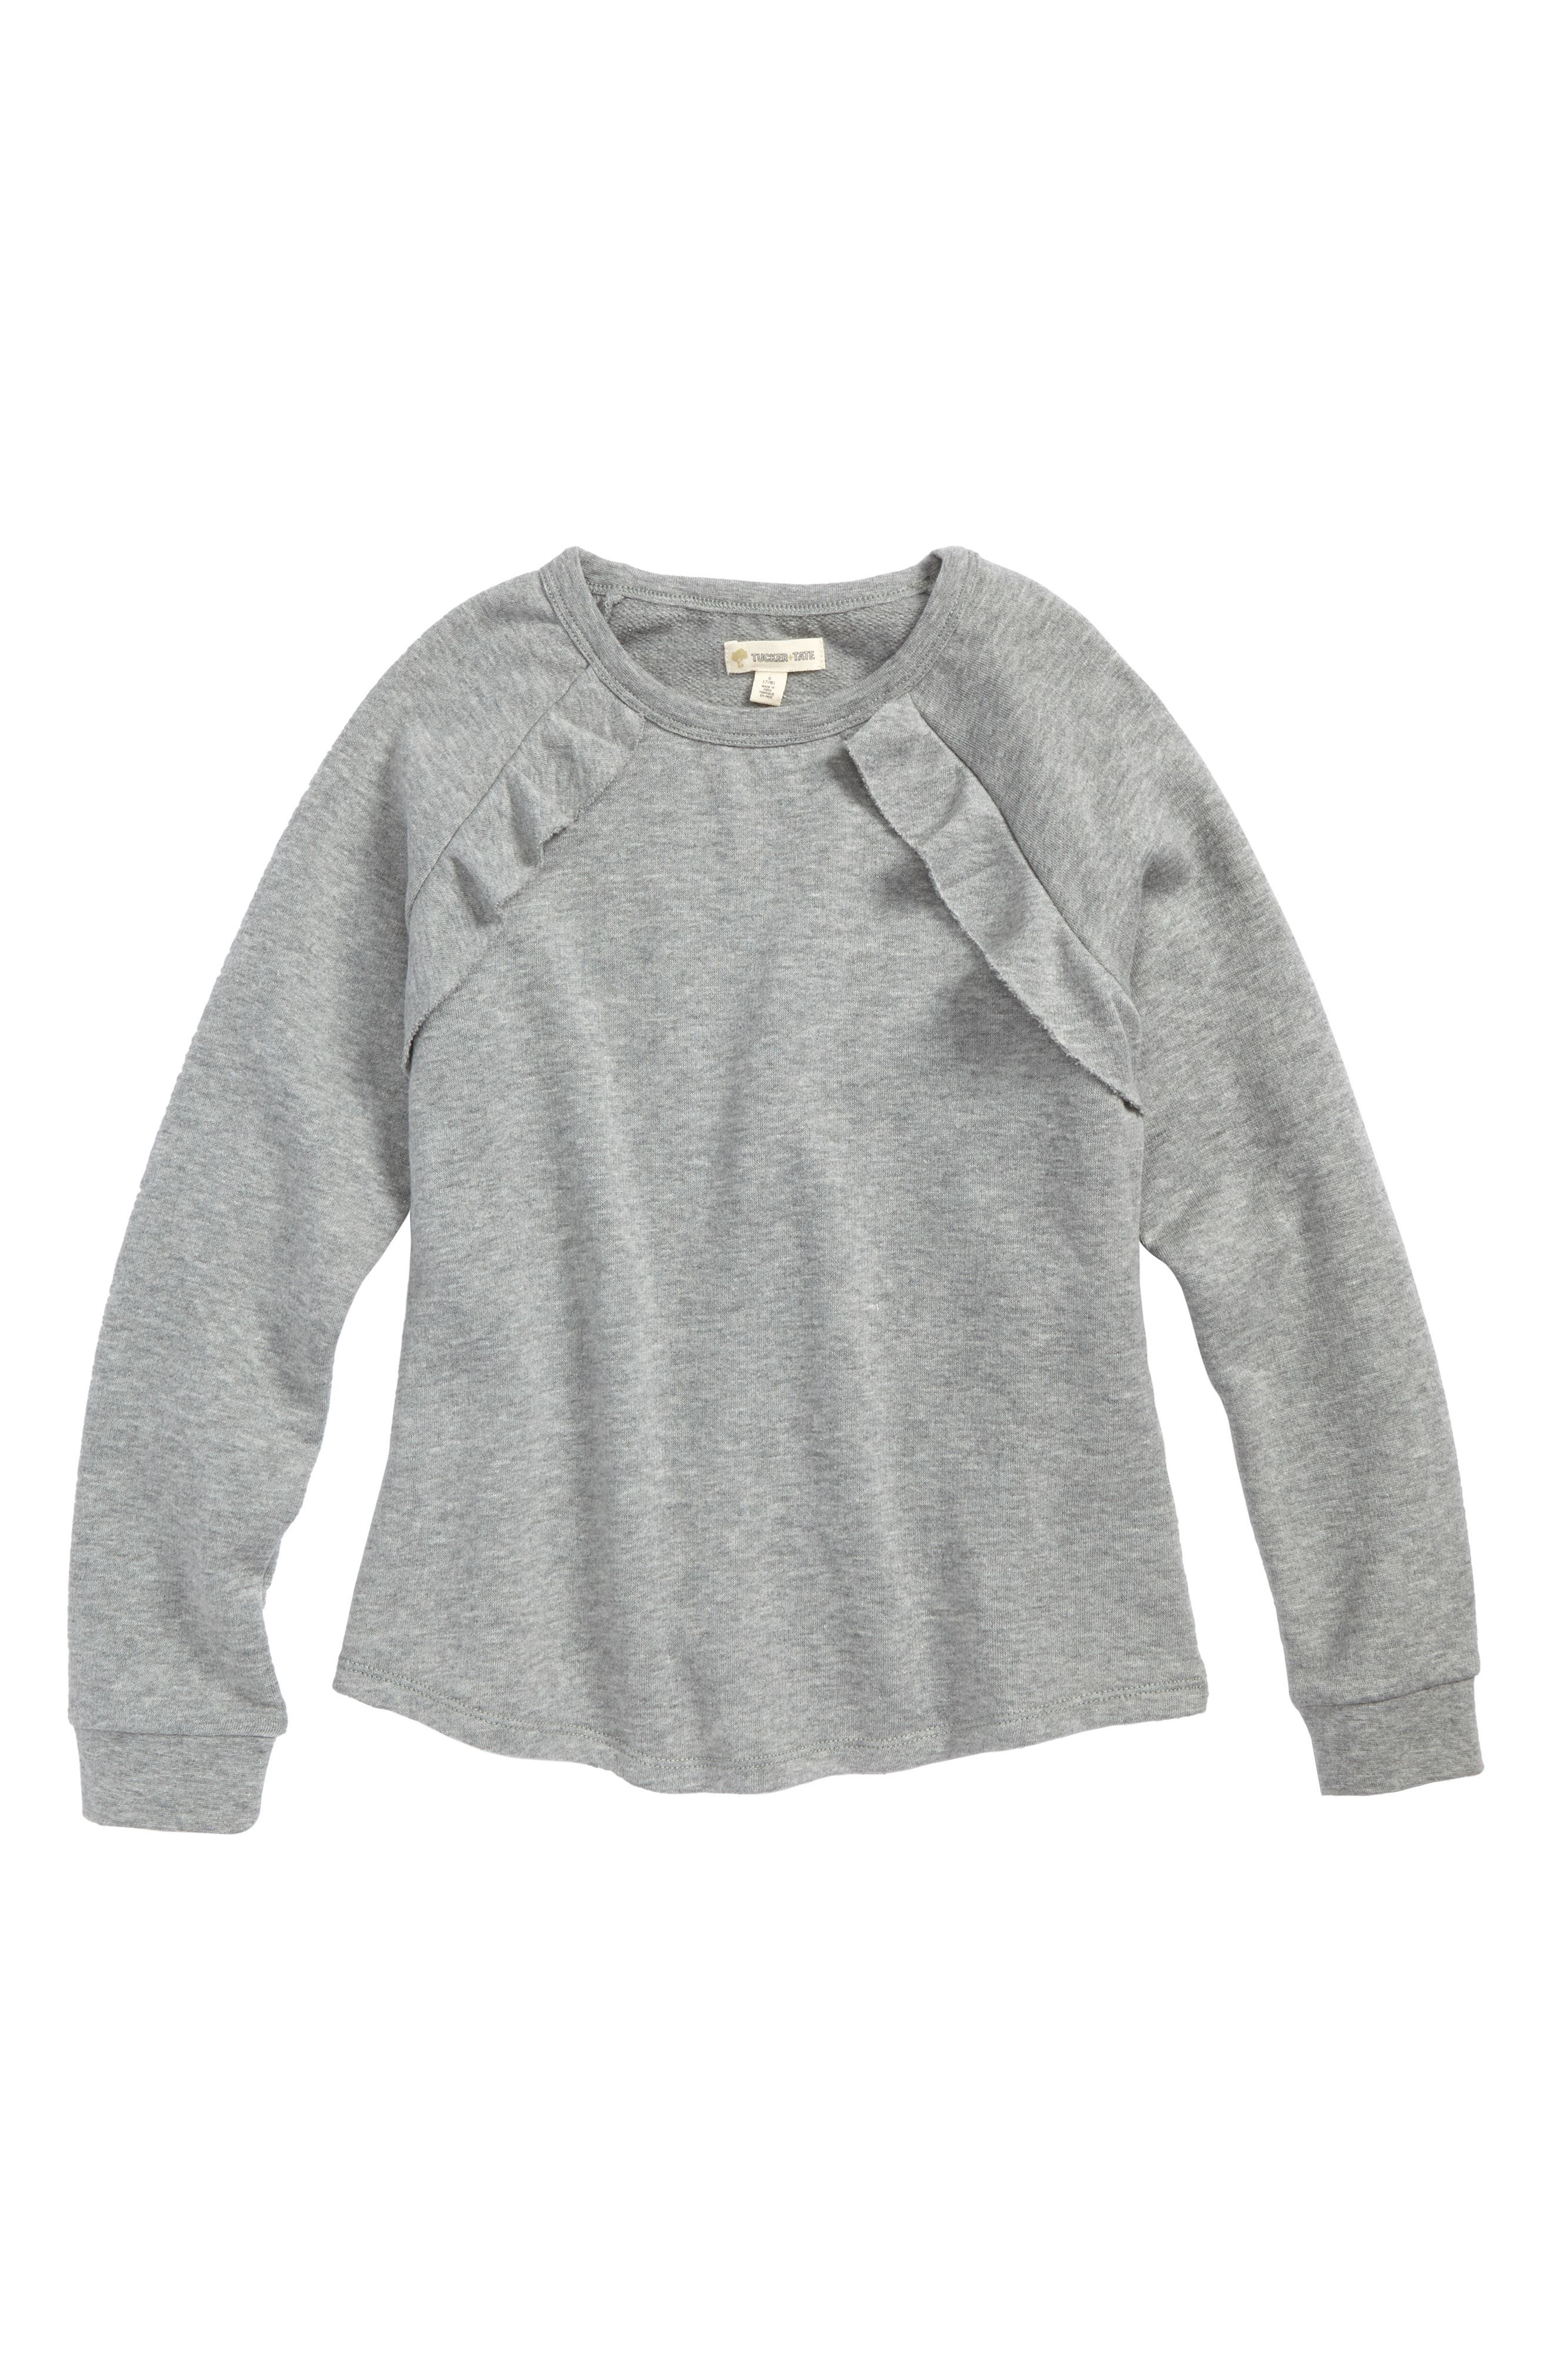 Ruffle Fleece Sweatshirt,                             Main thumbnail 1, color,                             Grey Medium Heather